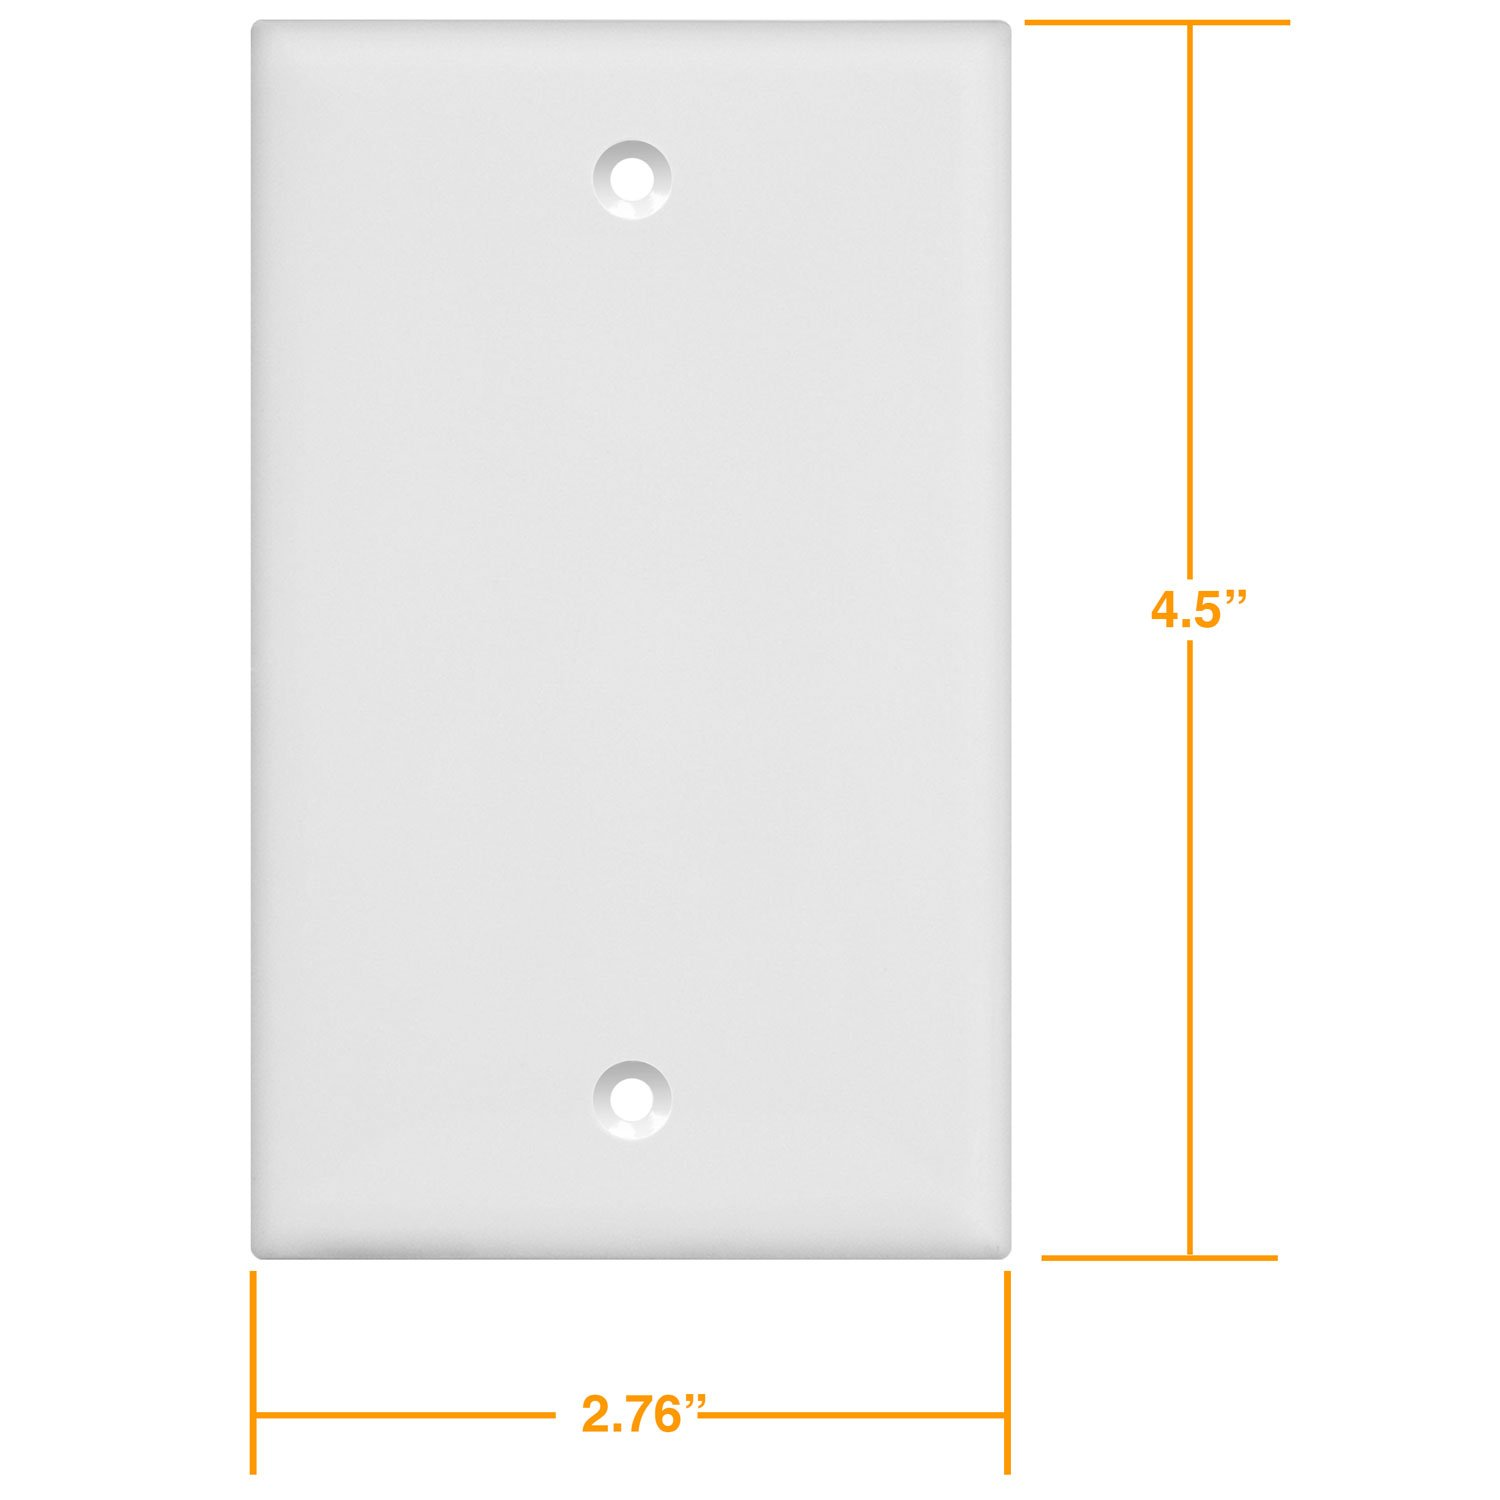 Enerlites 8801-W-10PCS Blank Cover Wall Plate, Standard Size 1-Gang, Polycarbonate Thermoplastic, White (10 Pack) by Enerlites (Image #6)